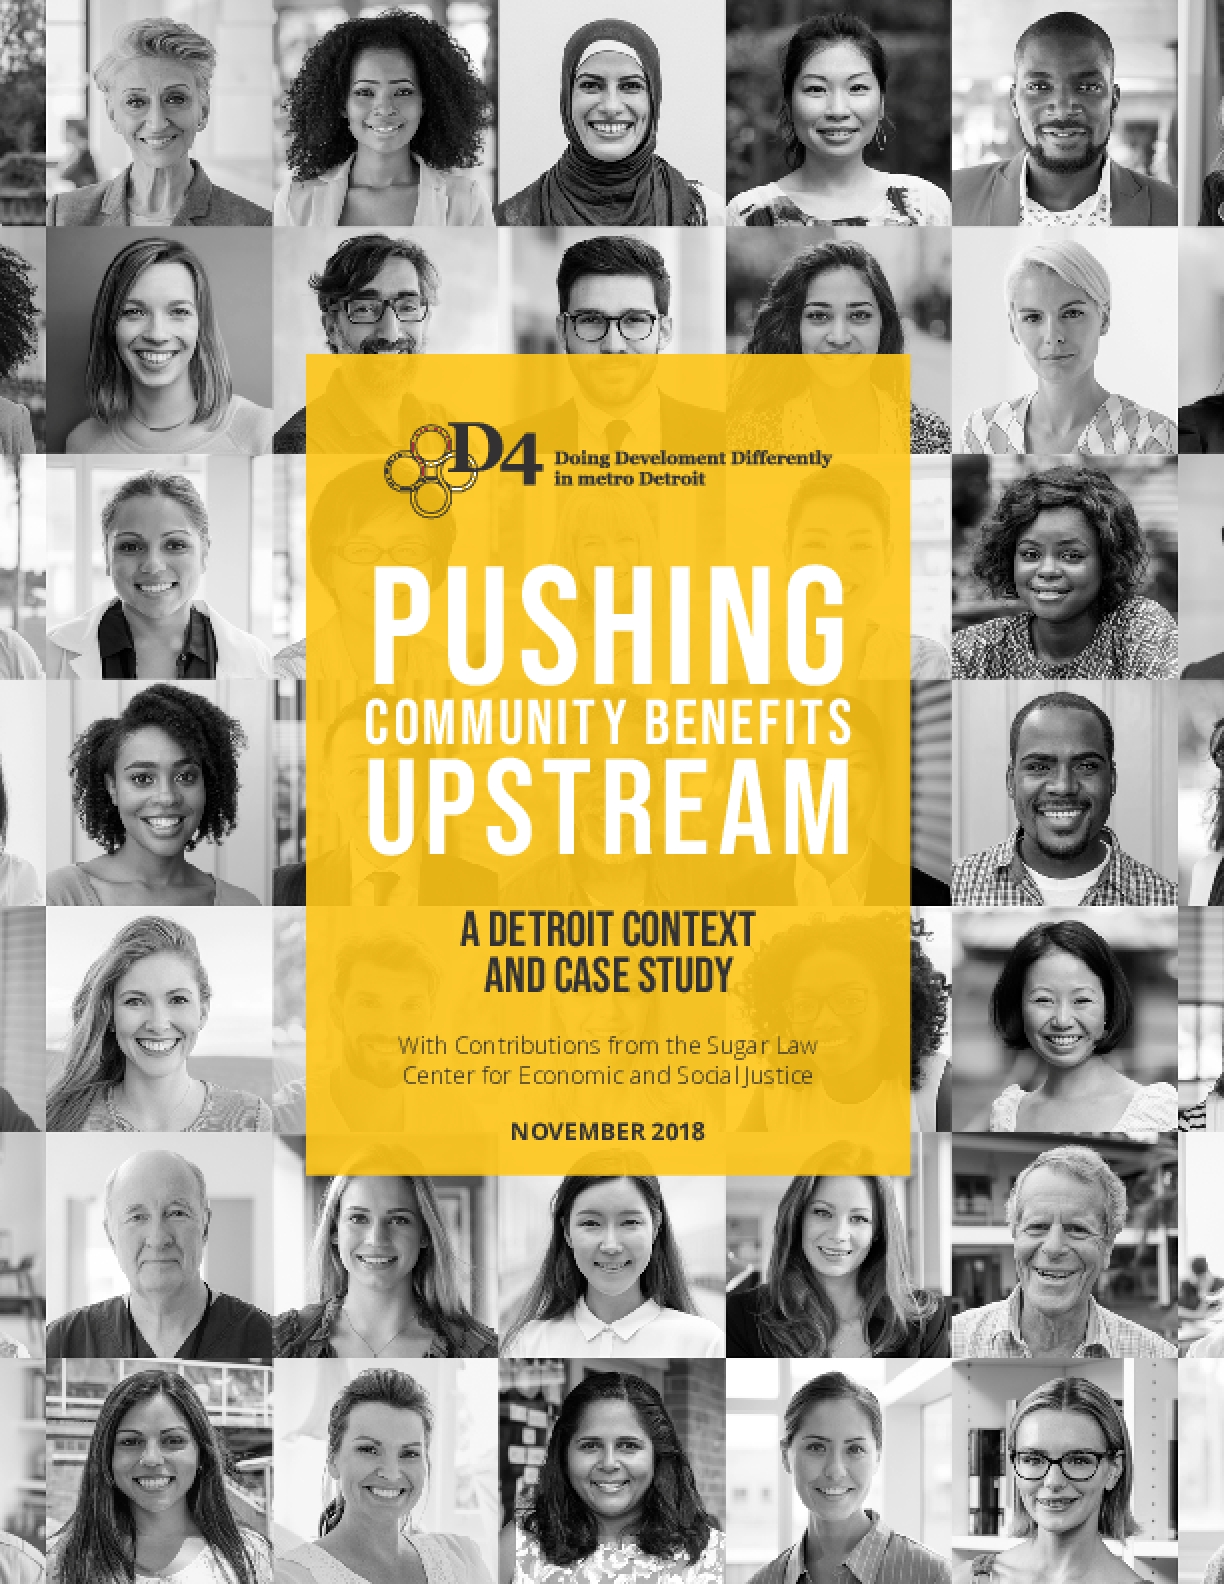 Pushing Community Benefits Upstream: A Detroit Context and Case Study